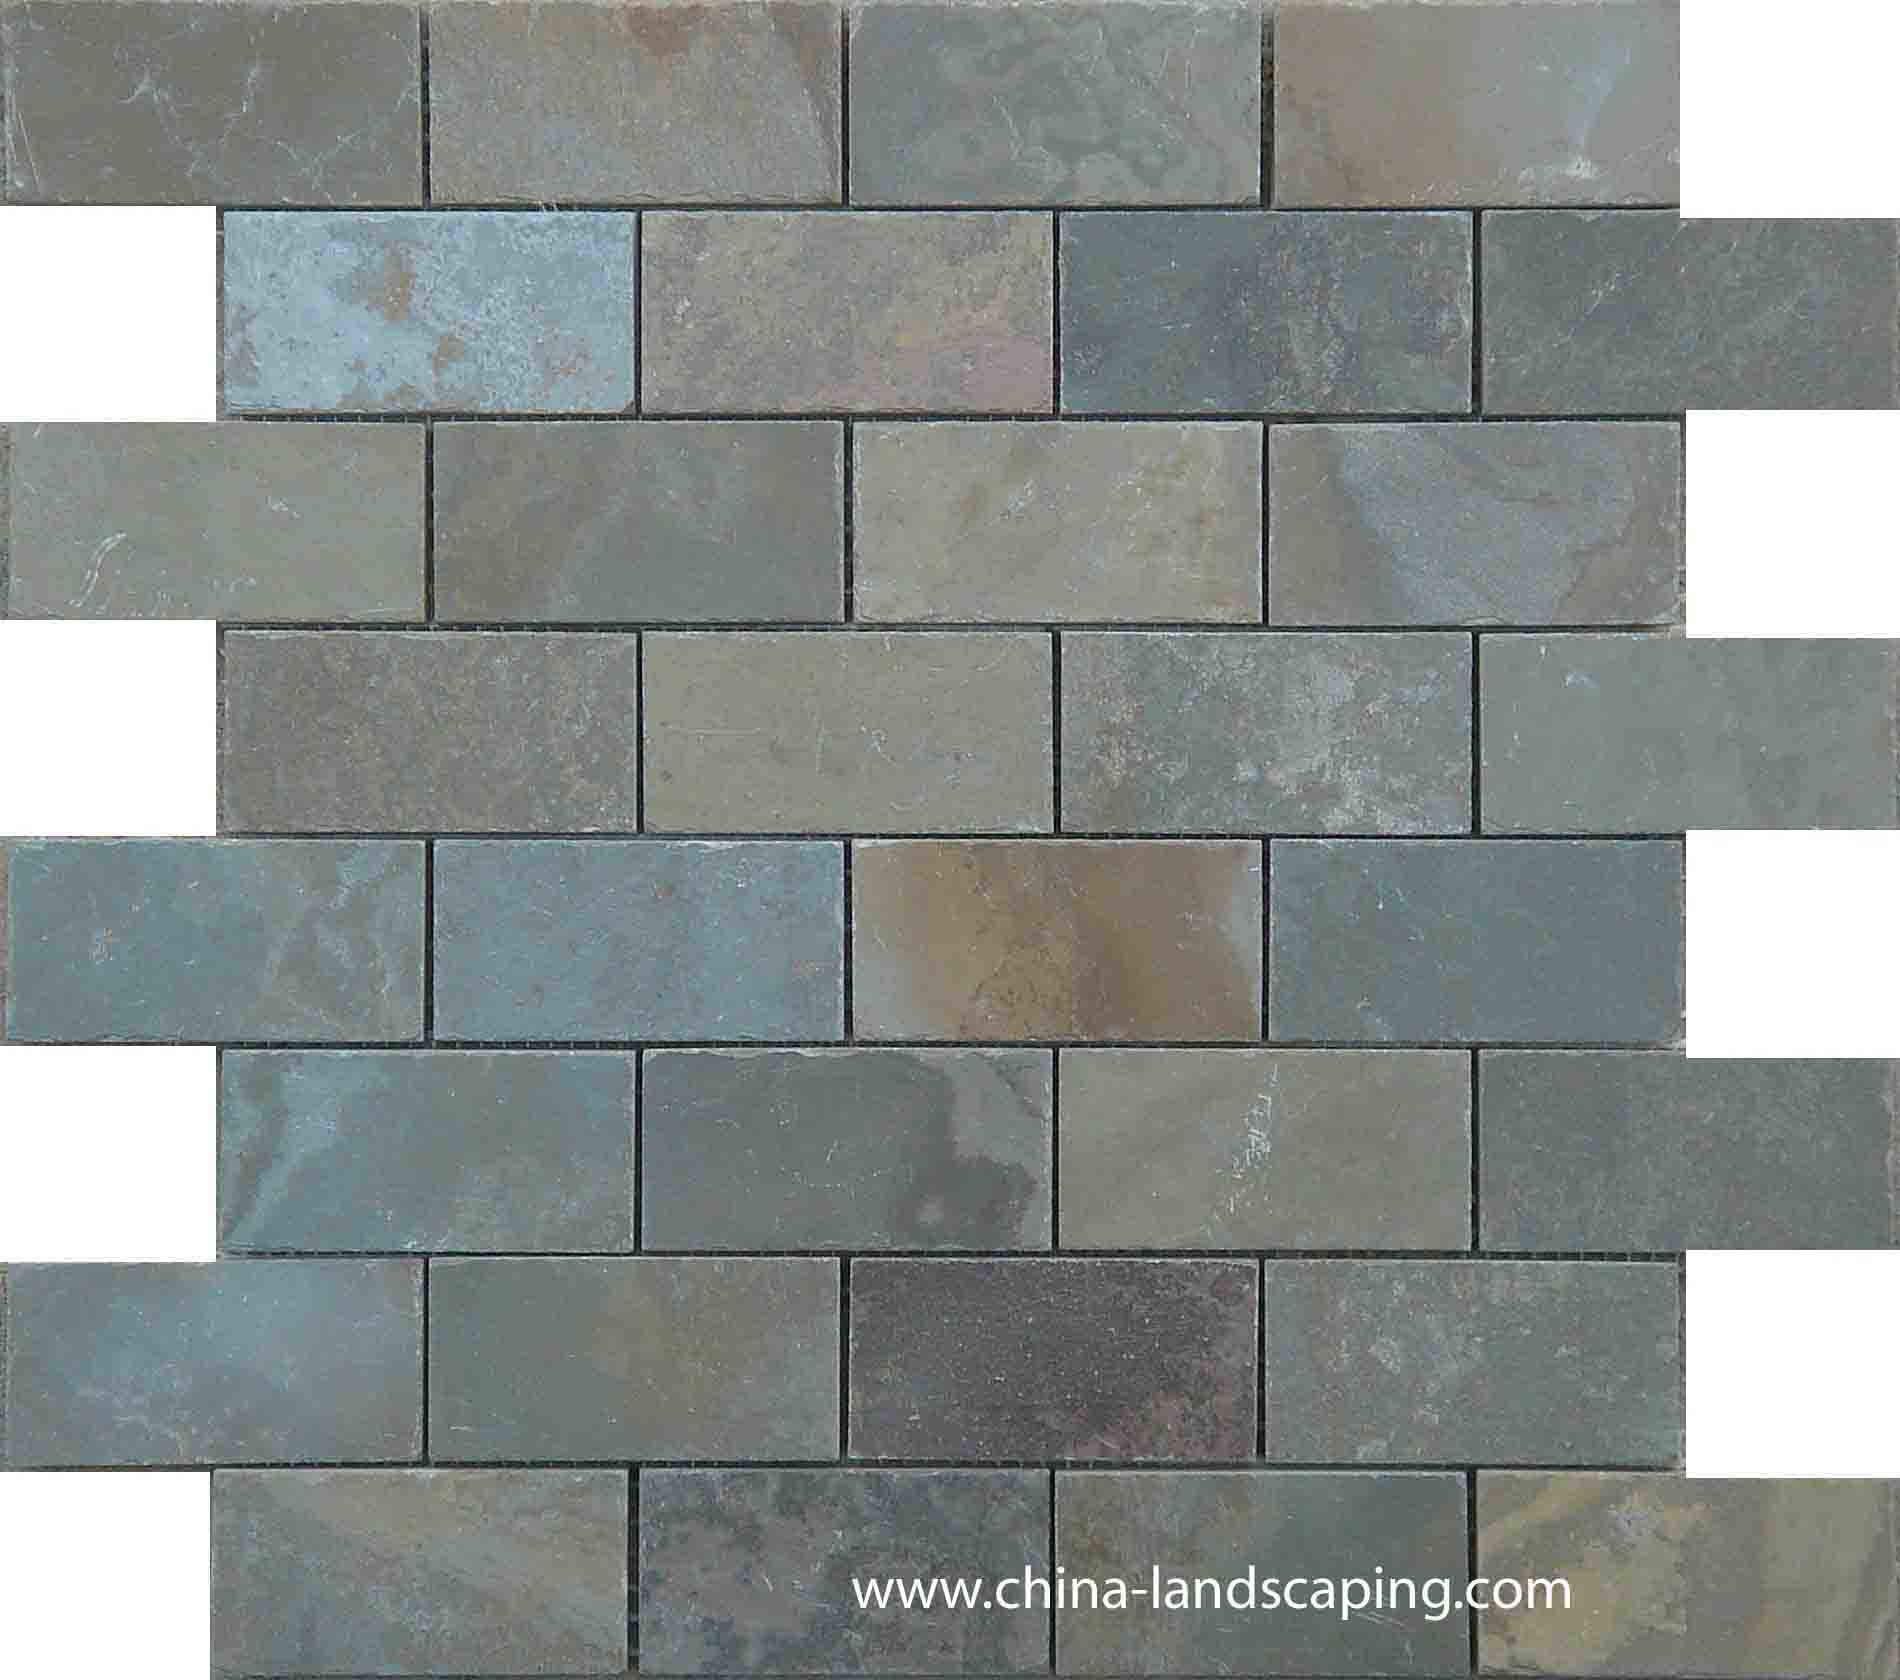 Natural Slate Tile : China natural slate mosaic tile mph